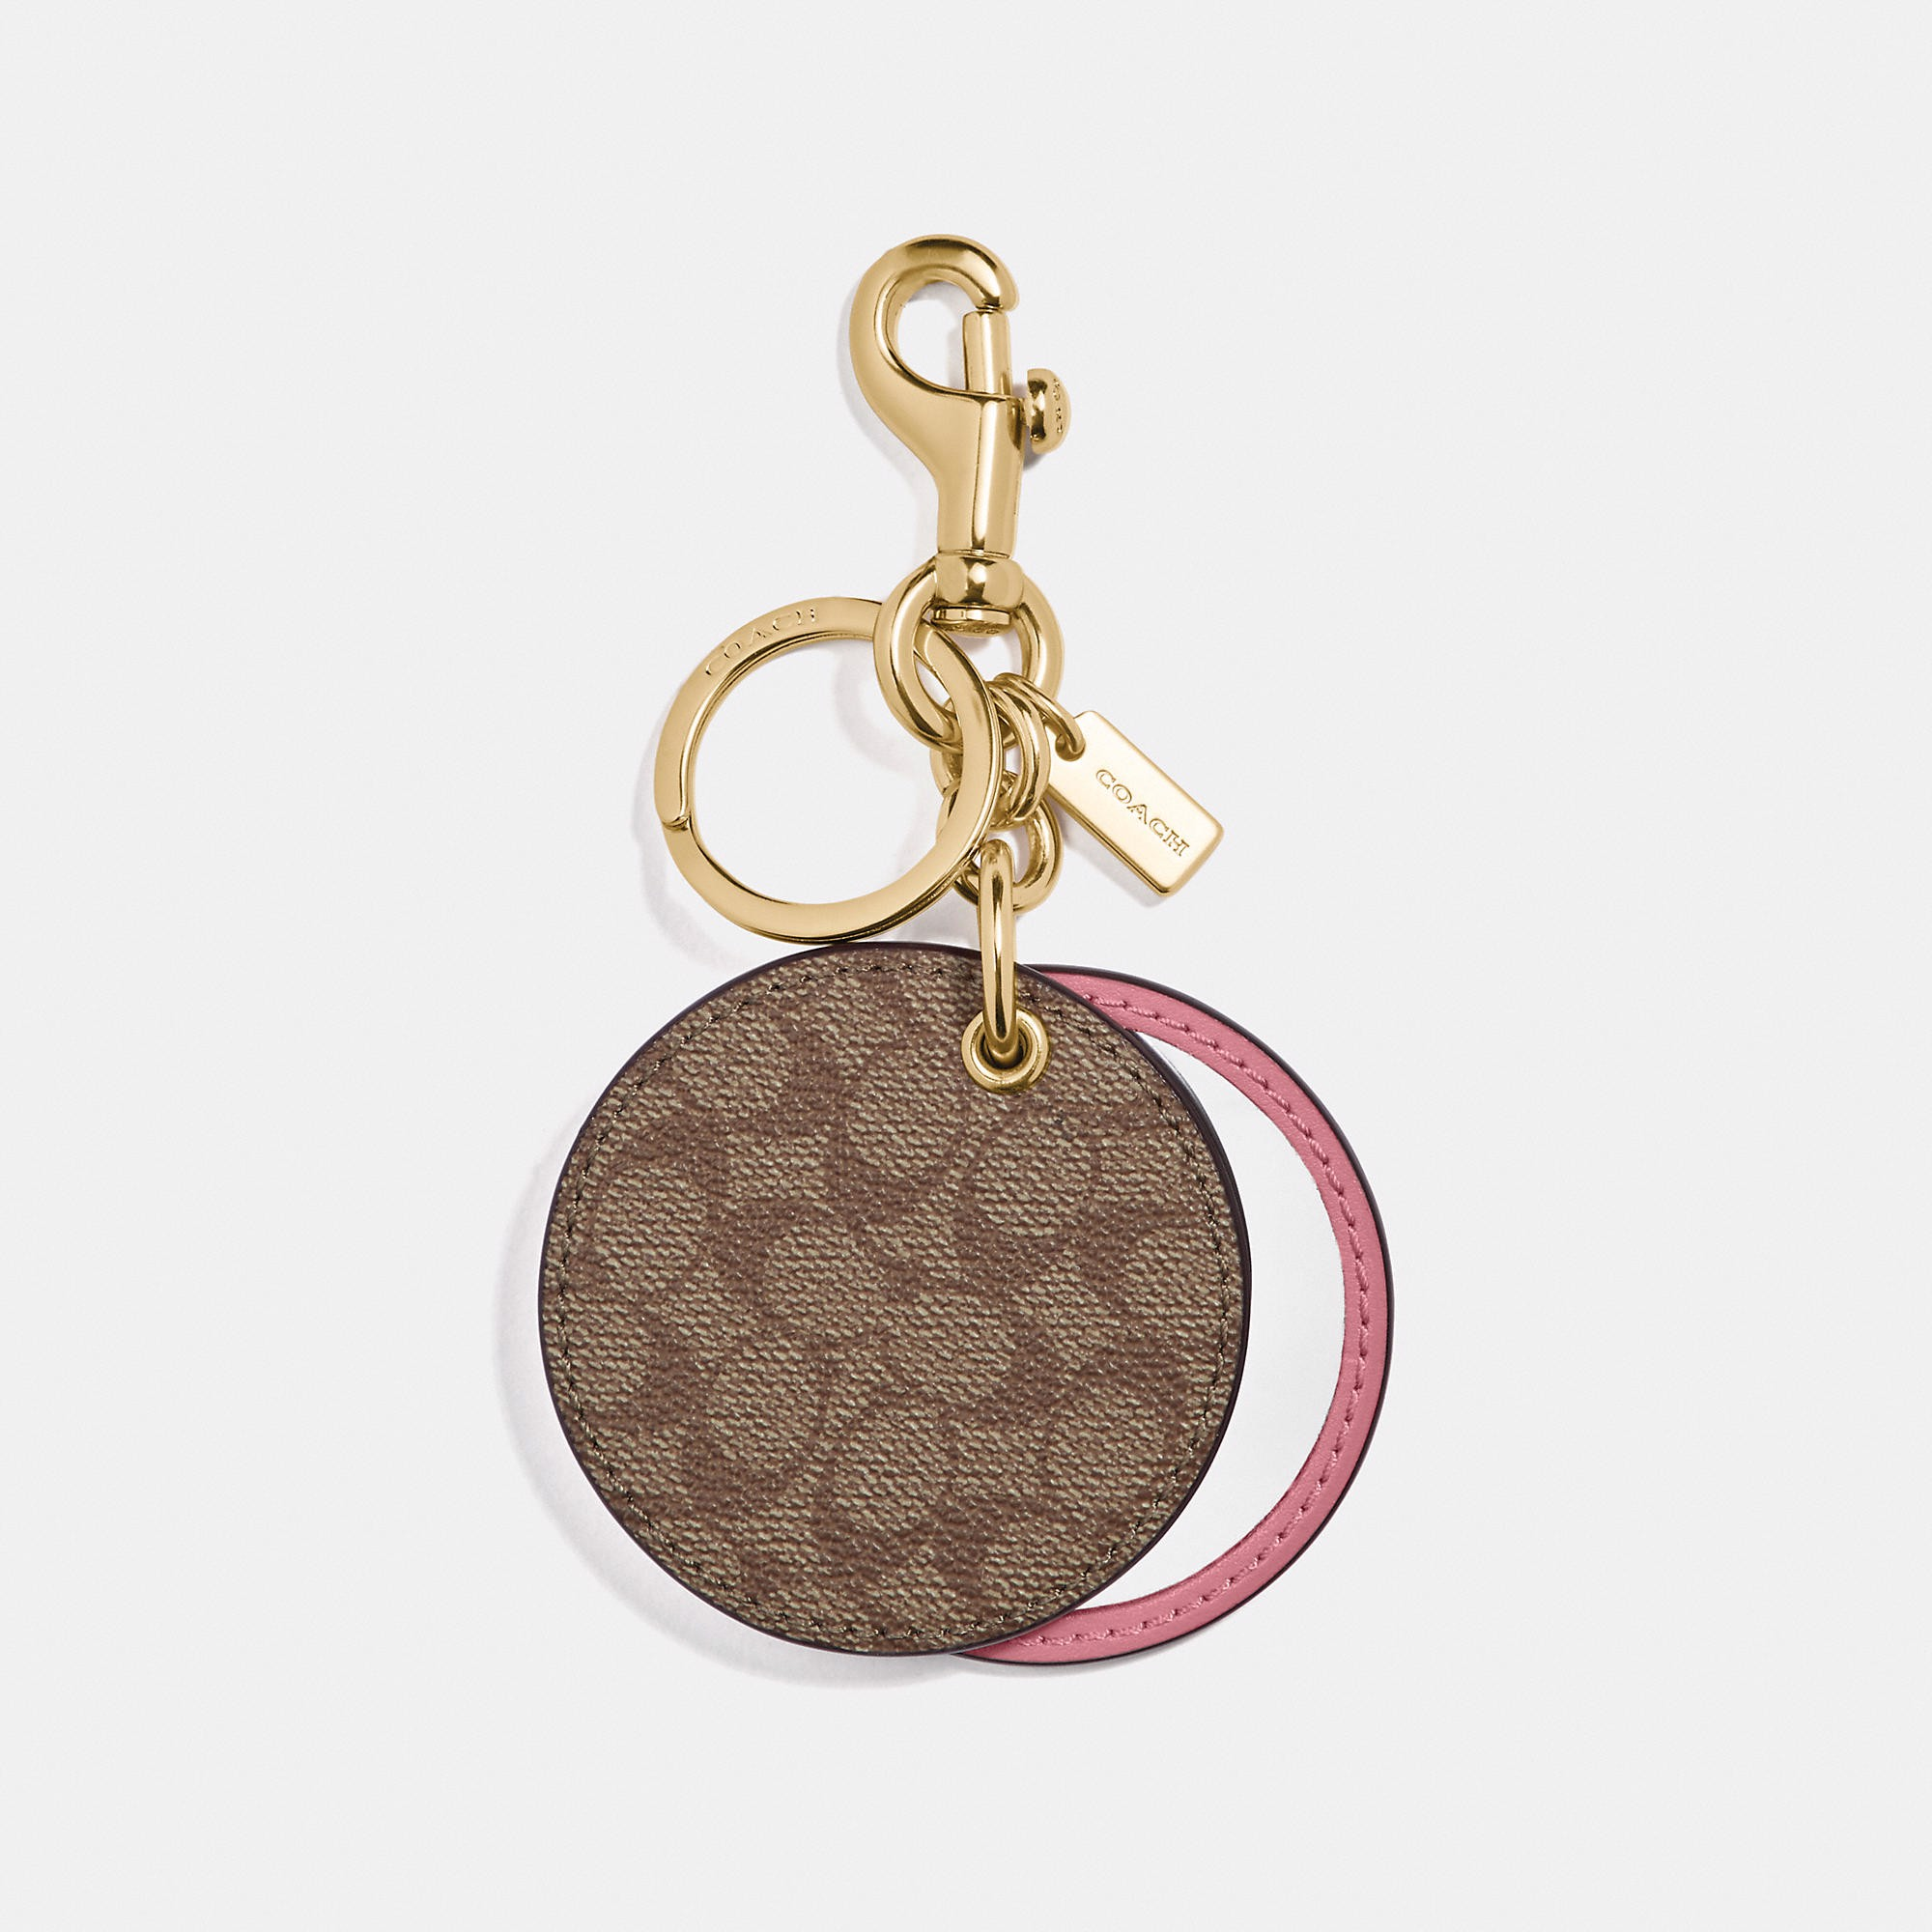 Coach Mirror Bag Charm In Signature Canvas 'Khaki/Pink'